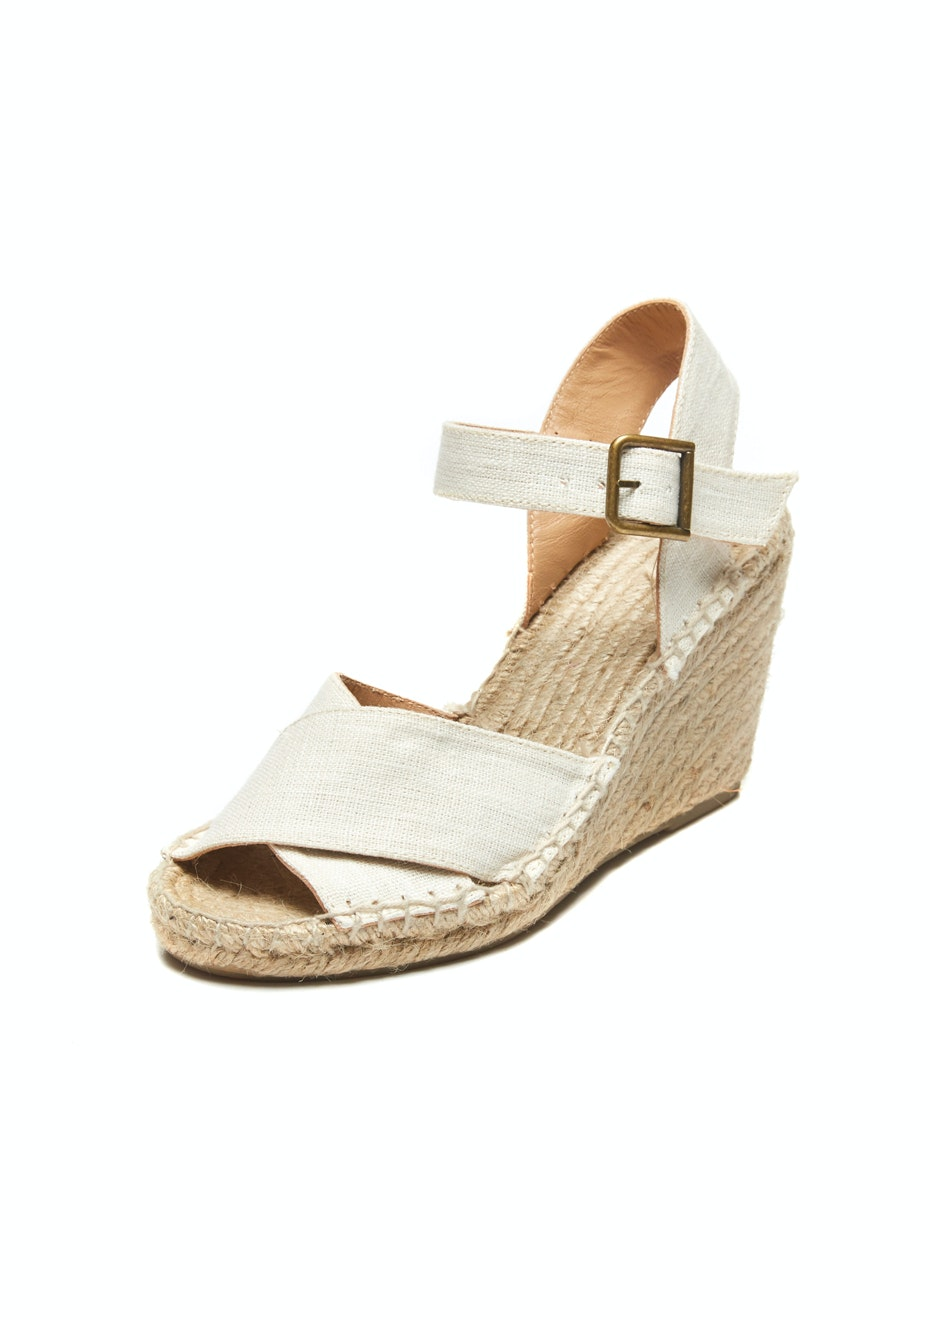 Soludos - Criss-Cross Wedge - Ivory